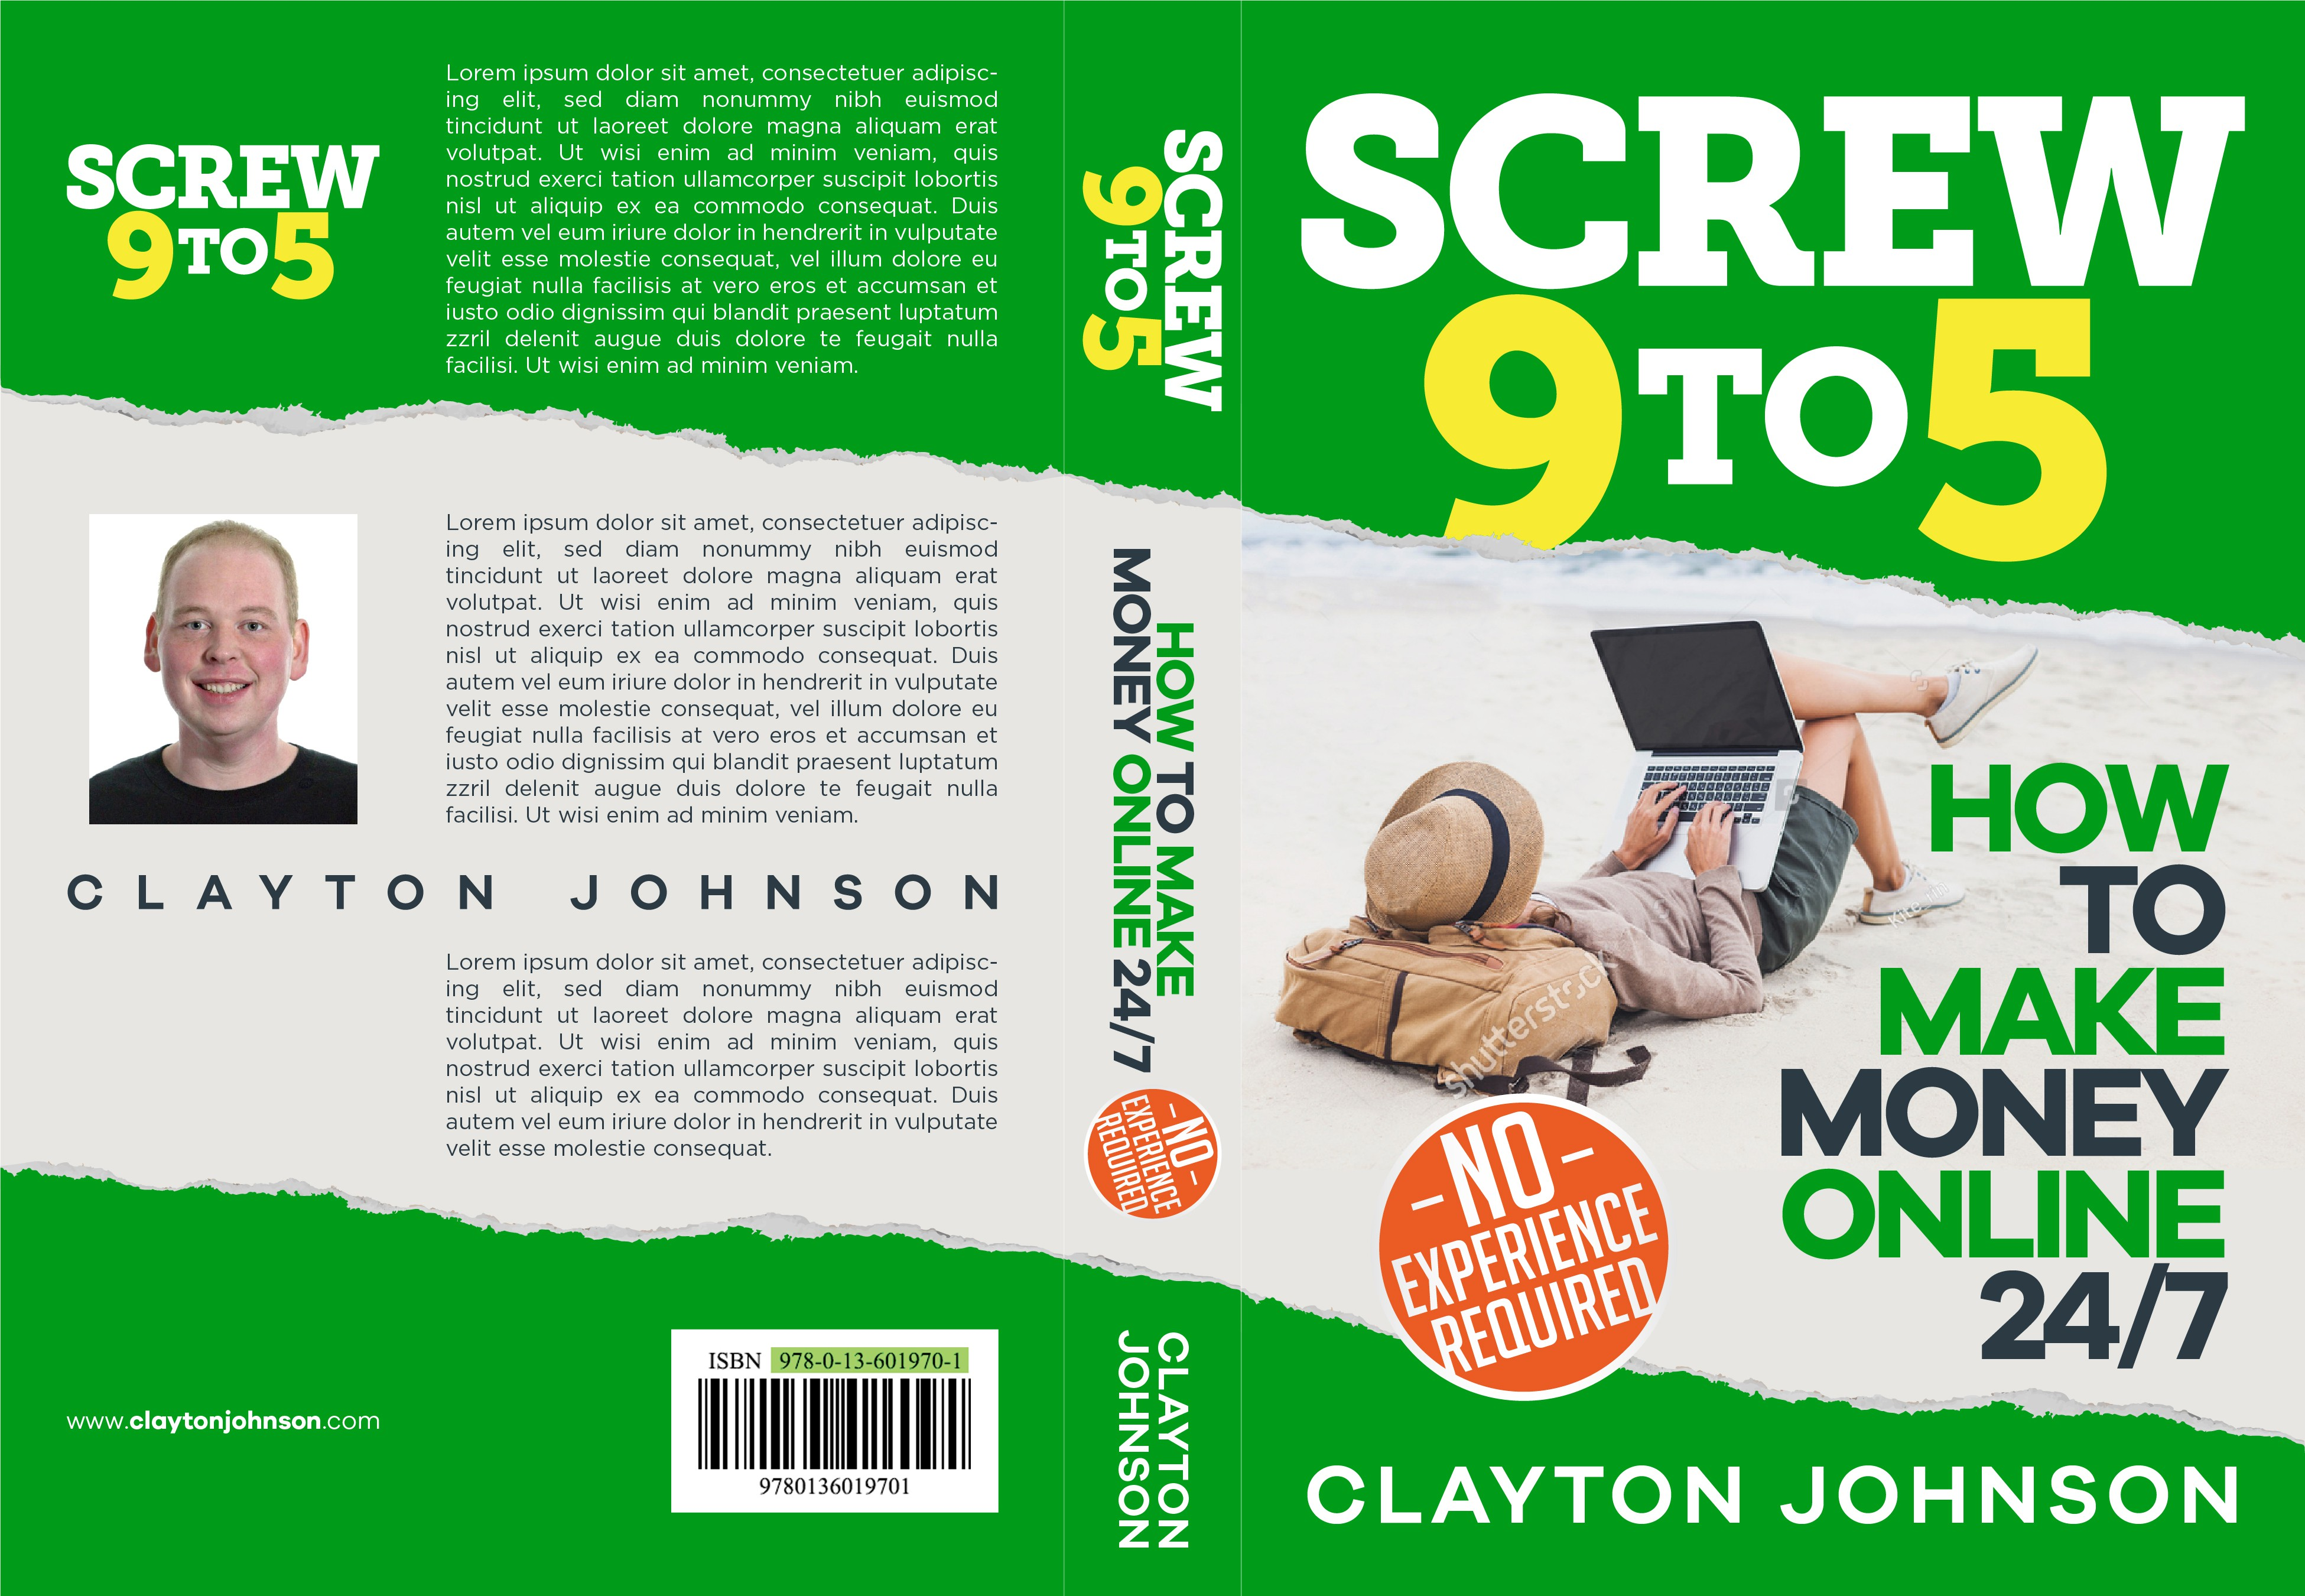 How to Make Money Online Book Cover